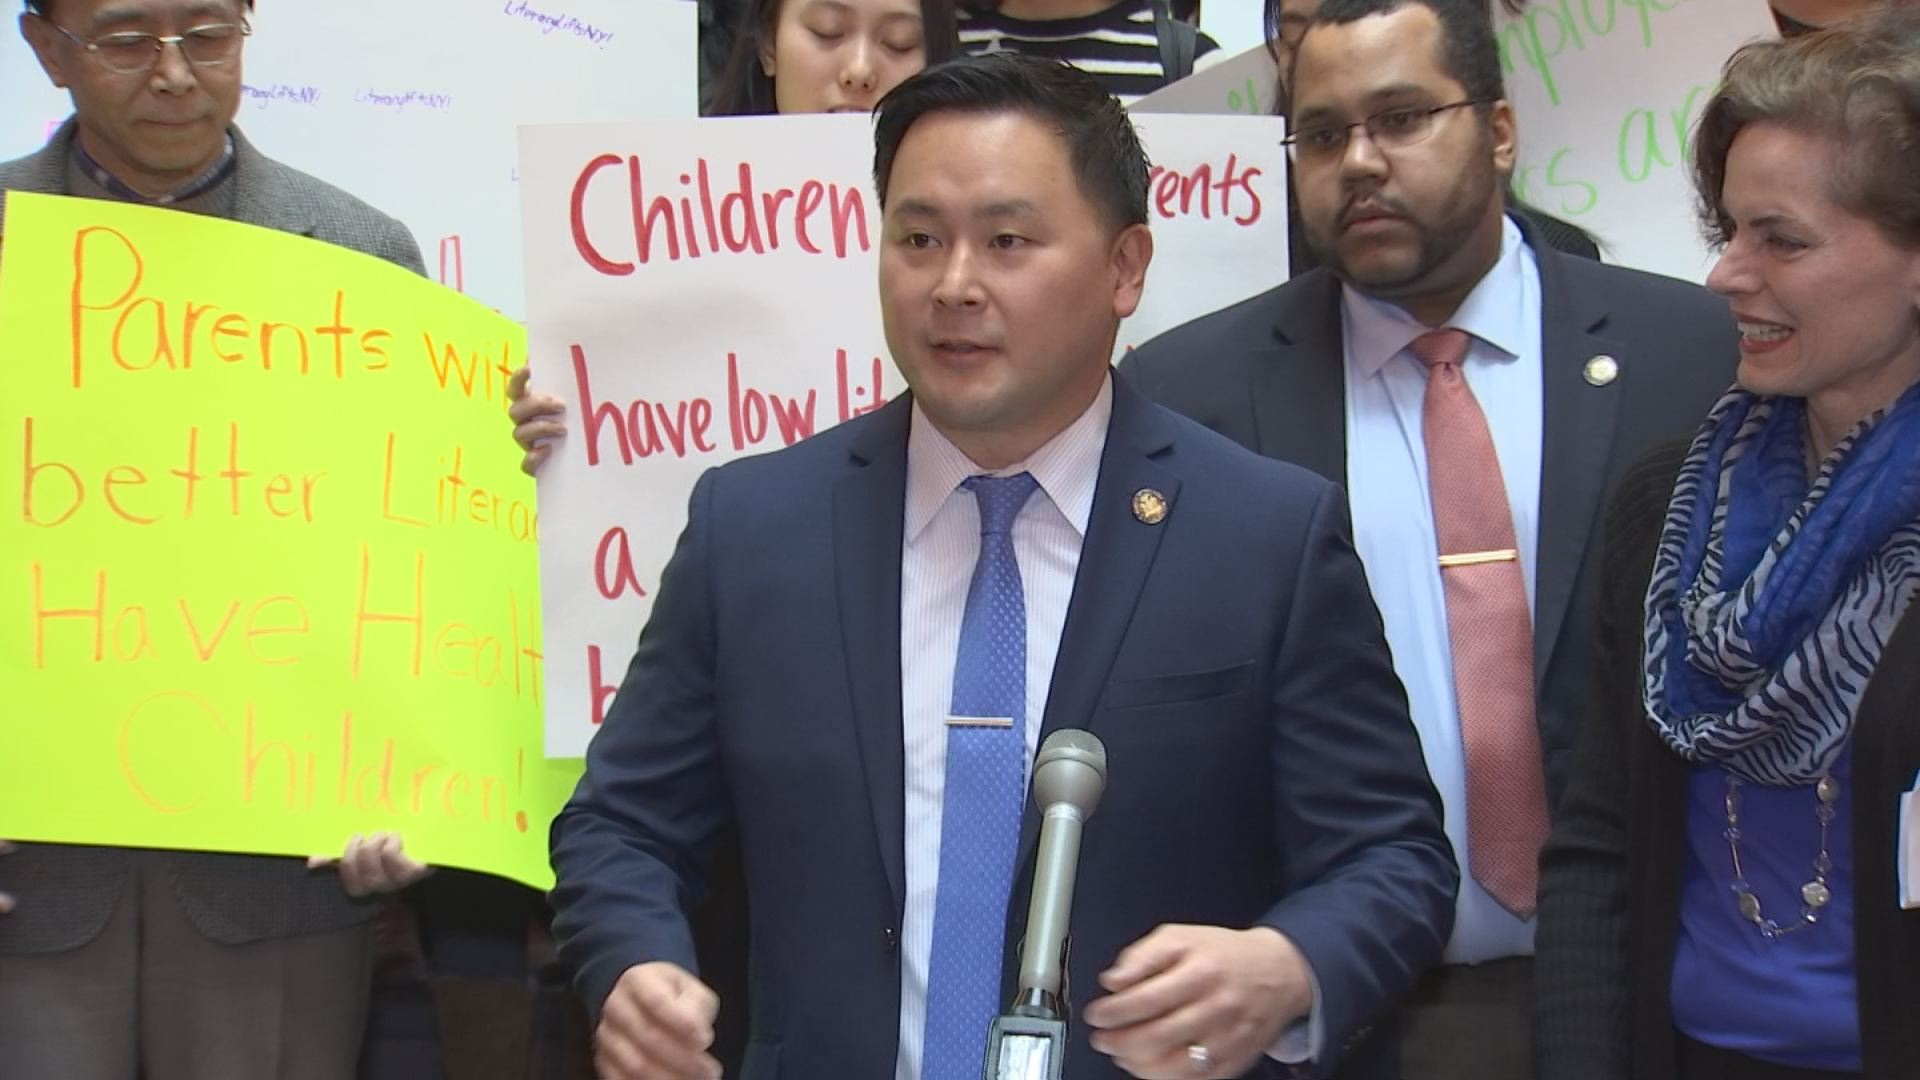 Assemblyman Kim Advocates for Adult Literacy Programs